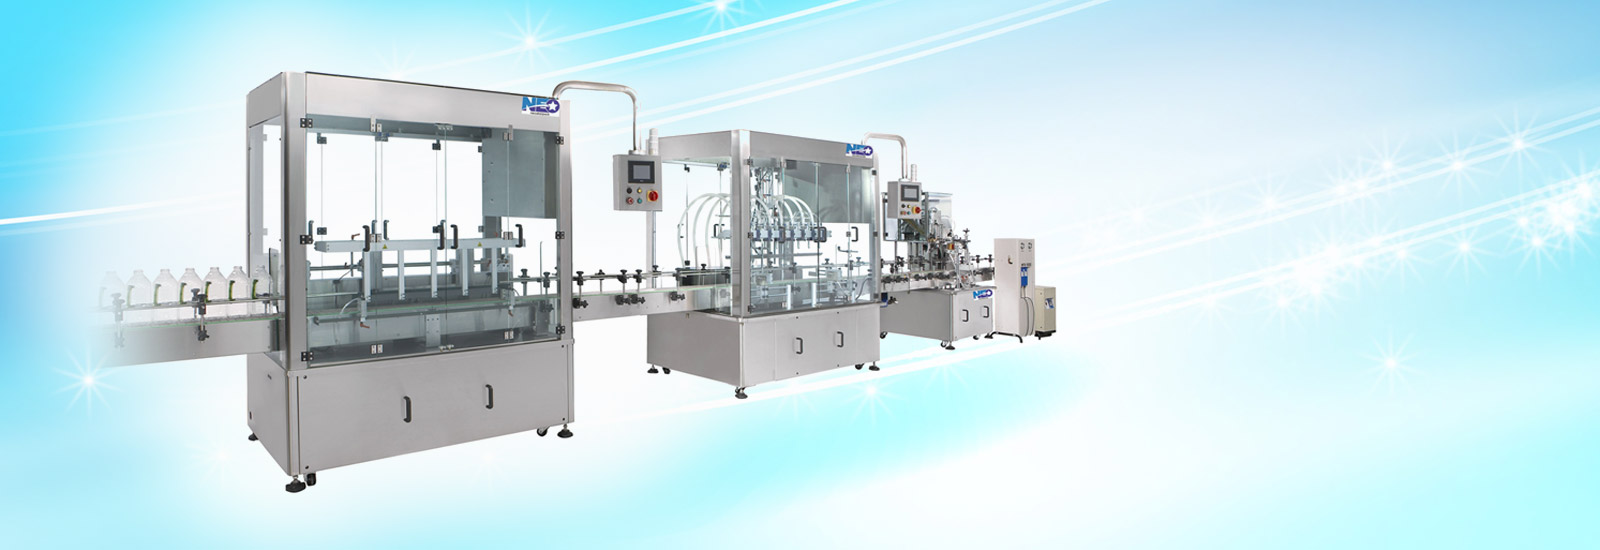 Fully Automatic Filling Line